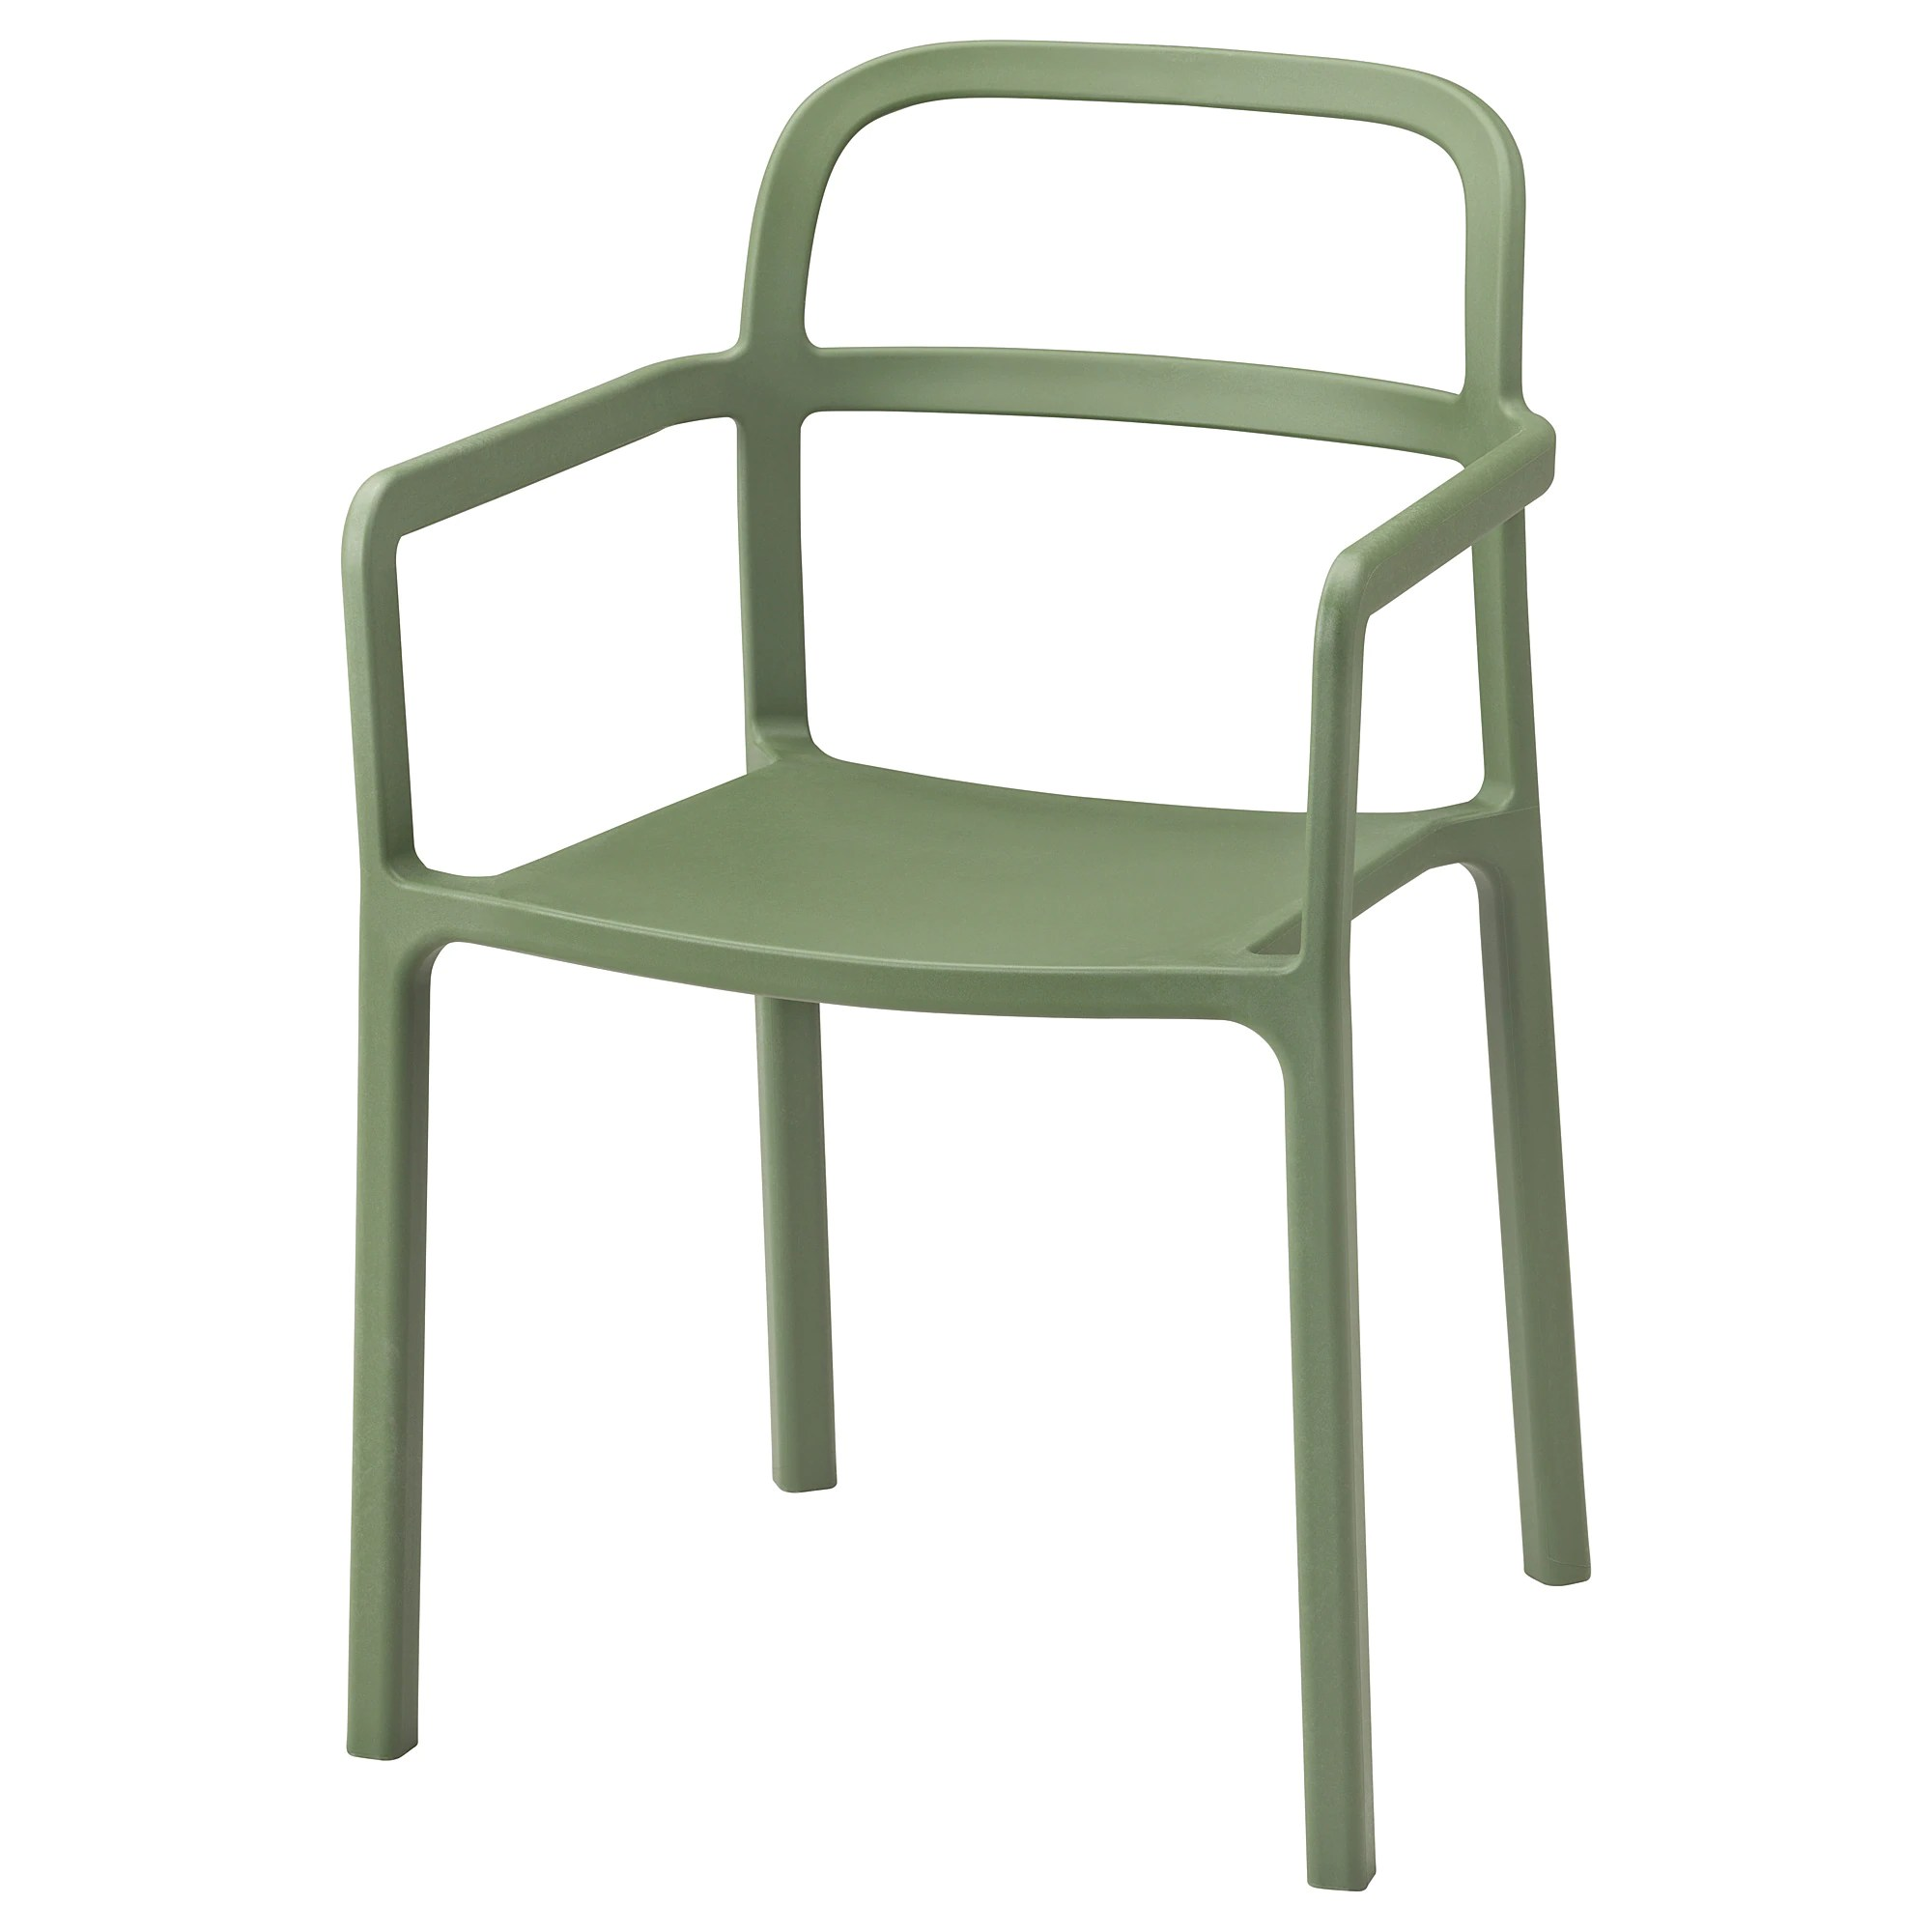 Ikea Ypperlig Ypperlig Armchair In Outdoor Green